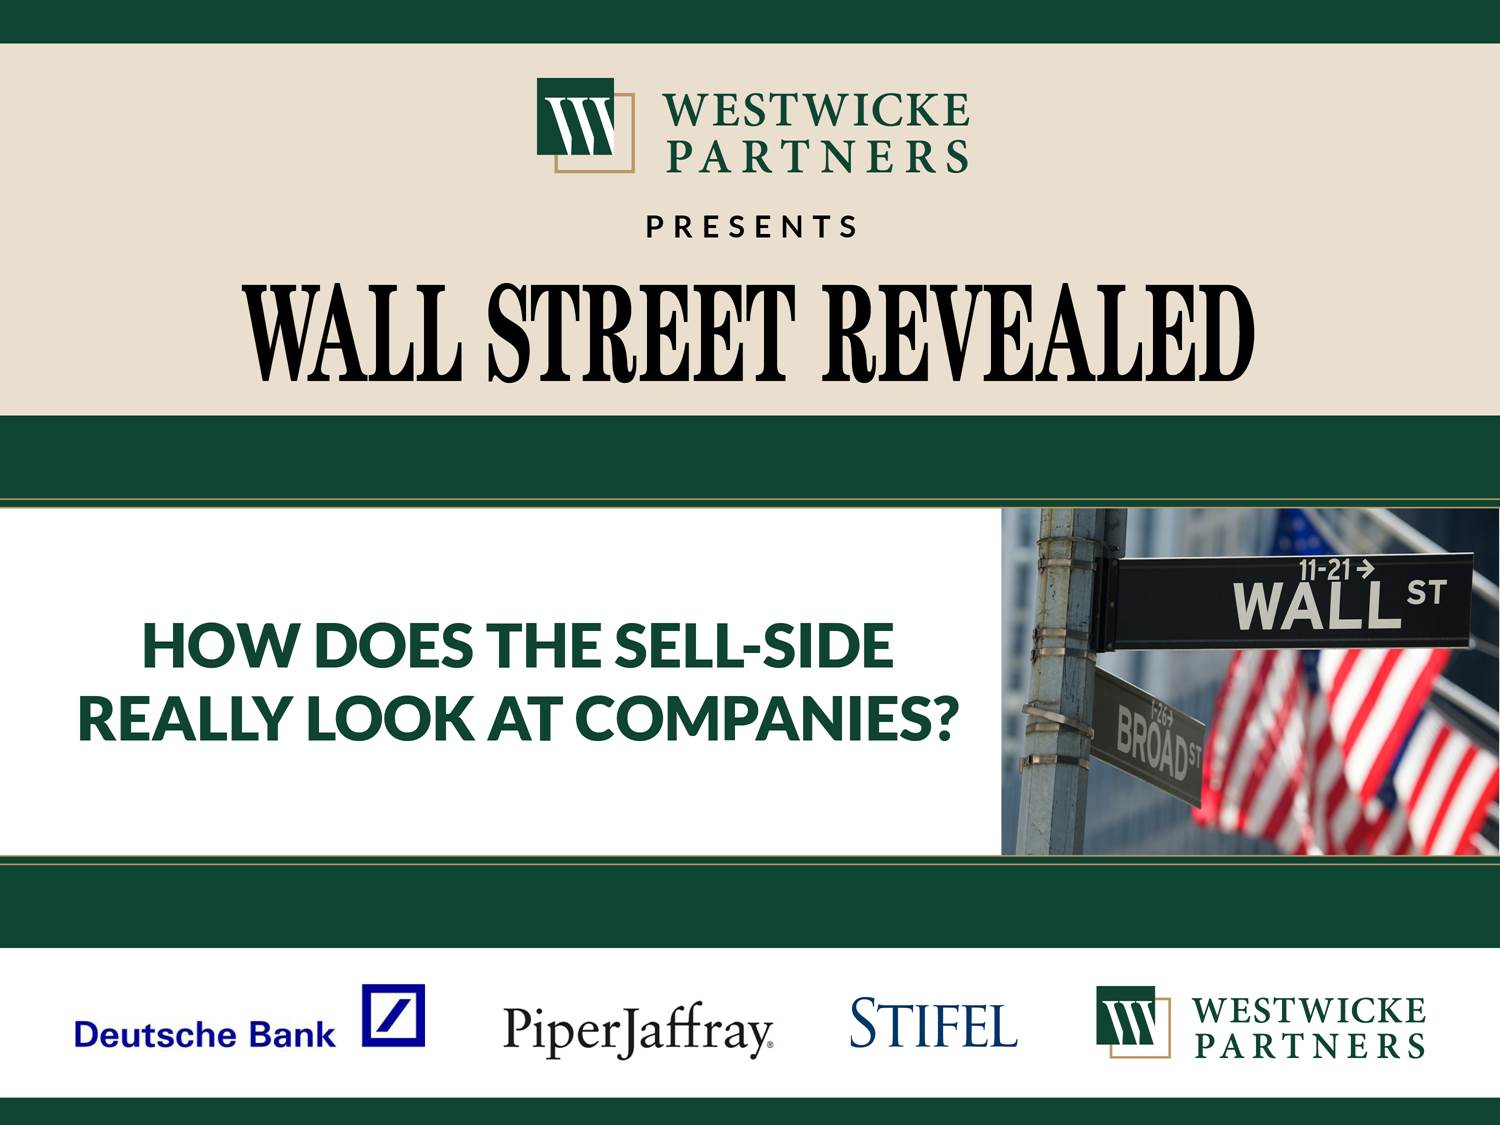 How Does the Sell-Side Really Look at Companies?